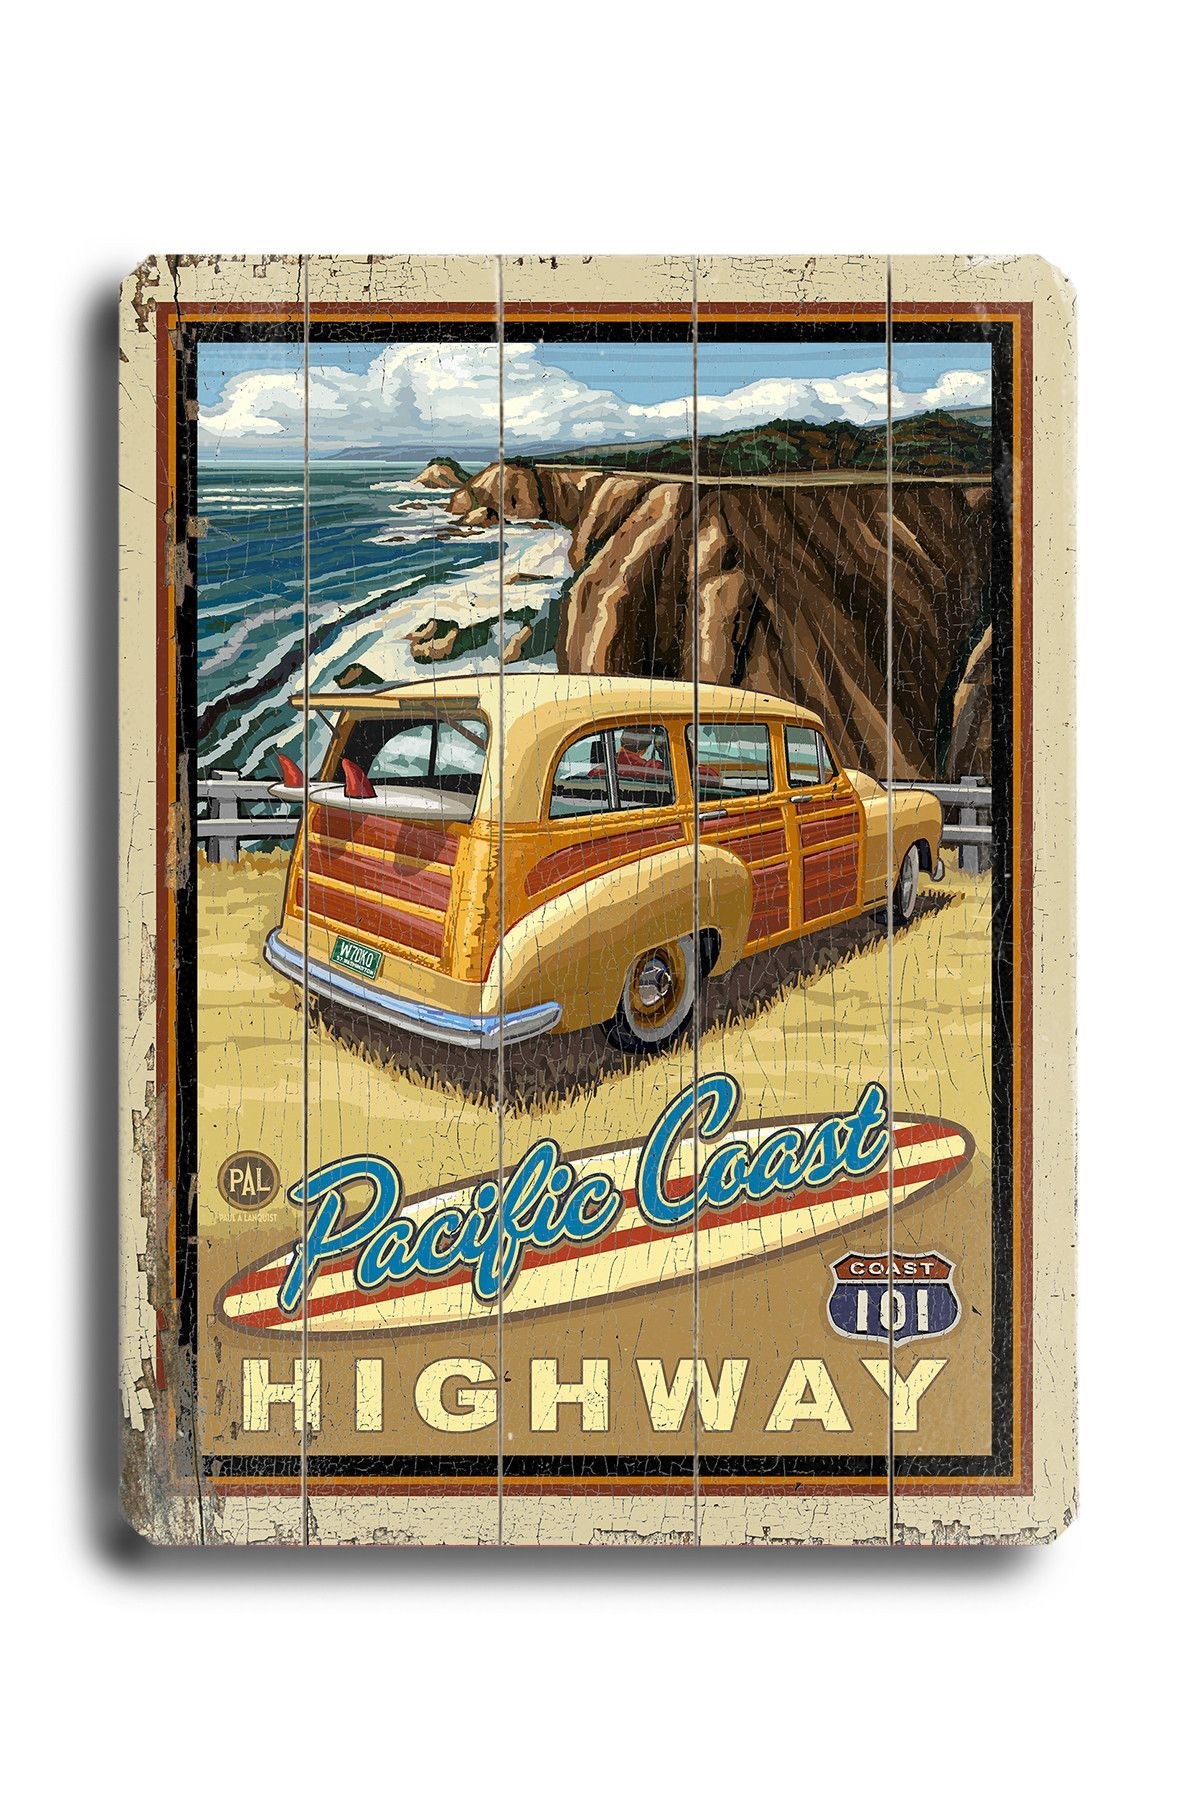 Woody At The Beach Unframed Advertisements Print On Wood Wood Sign Art Vintage Travel Posters Vintage Wood Signs